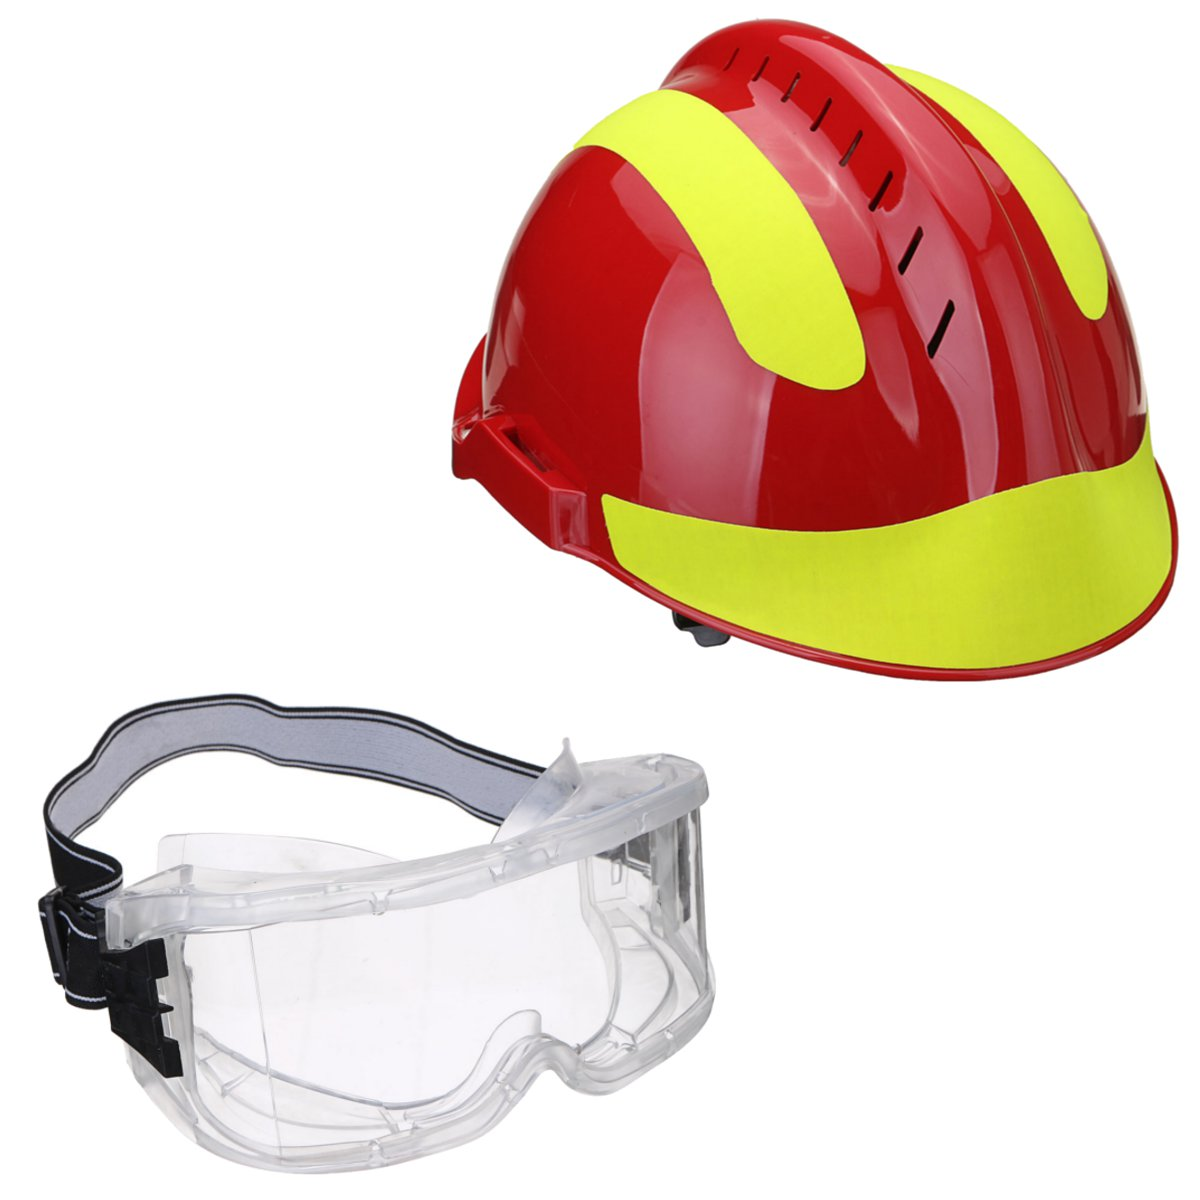 Safurance Rescue Helmet Fire Fighter Protective Glasses Safety Protector  Workplace Safety Fire Protection  53CM-63CM<br>